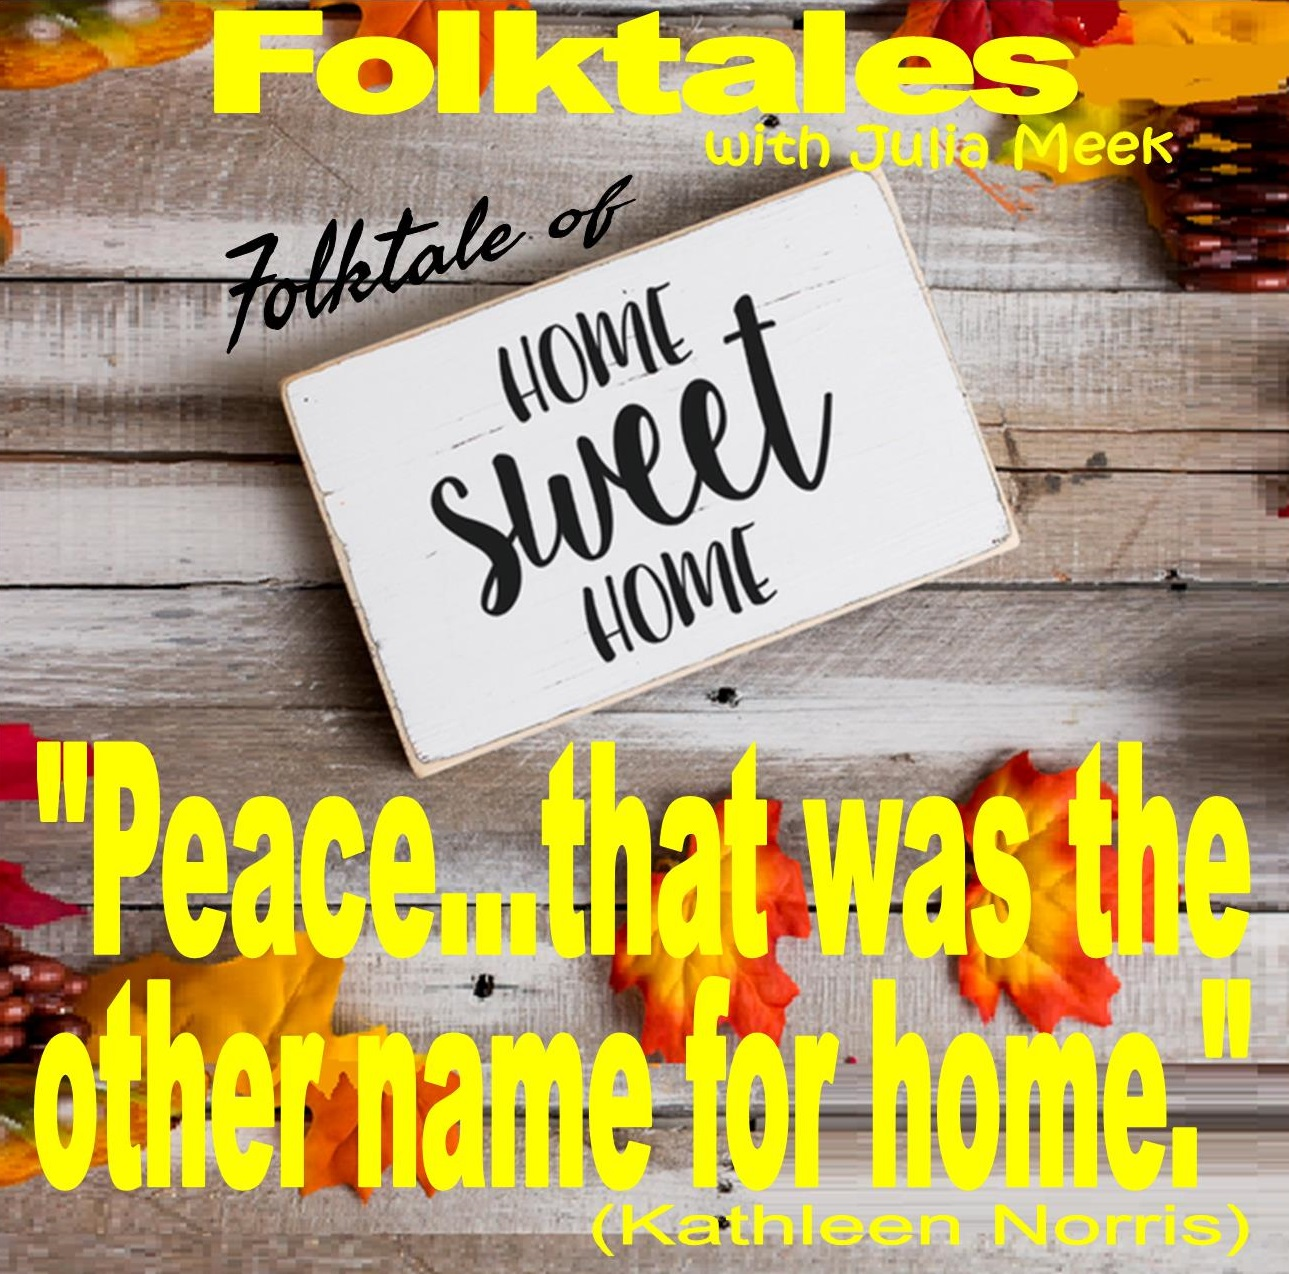 Caption: WBOI's Folktale of Home Sweet Home, Credit: Julia Meek